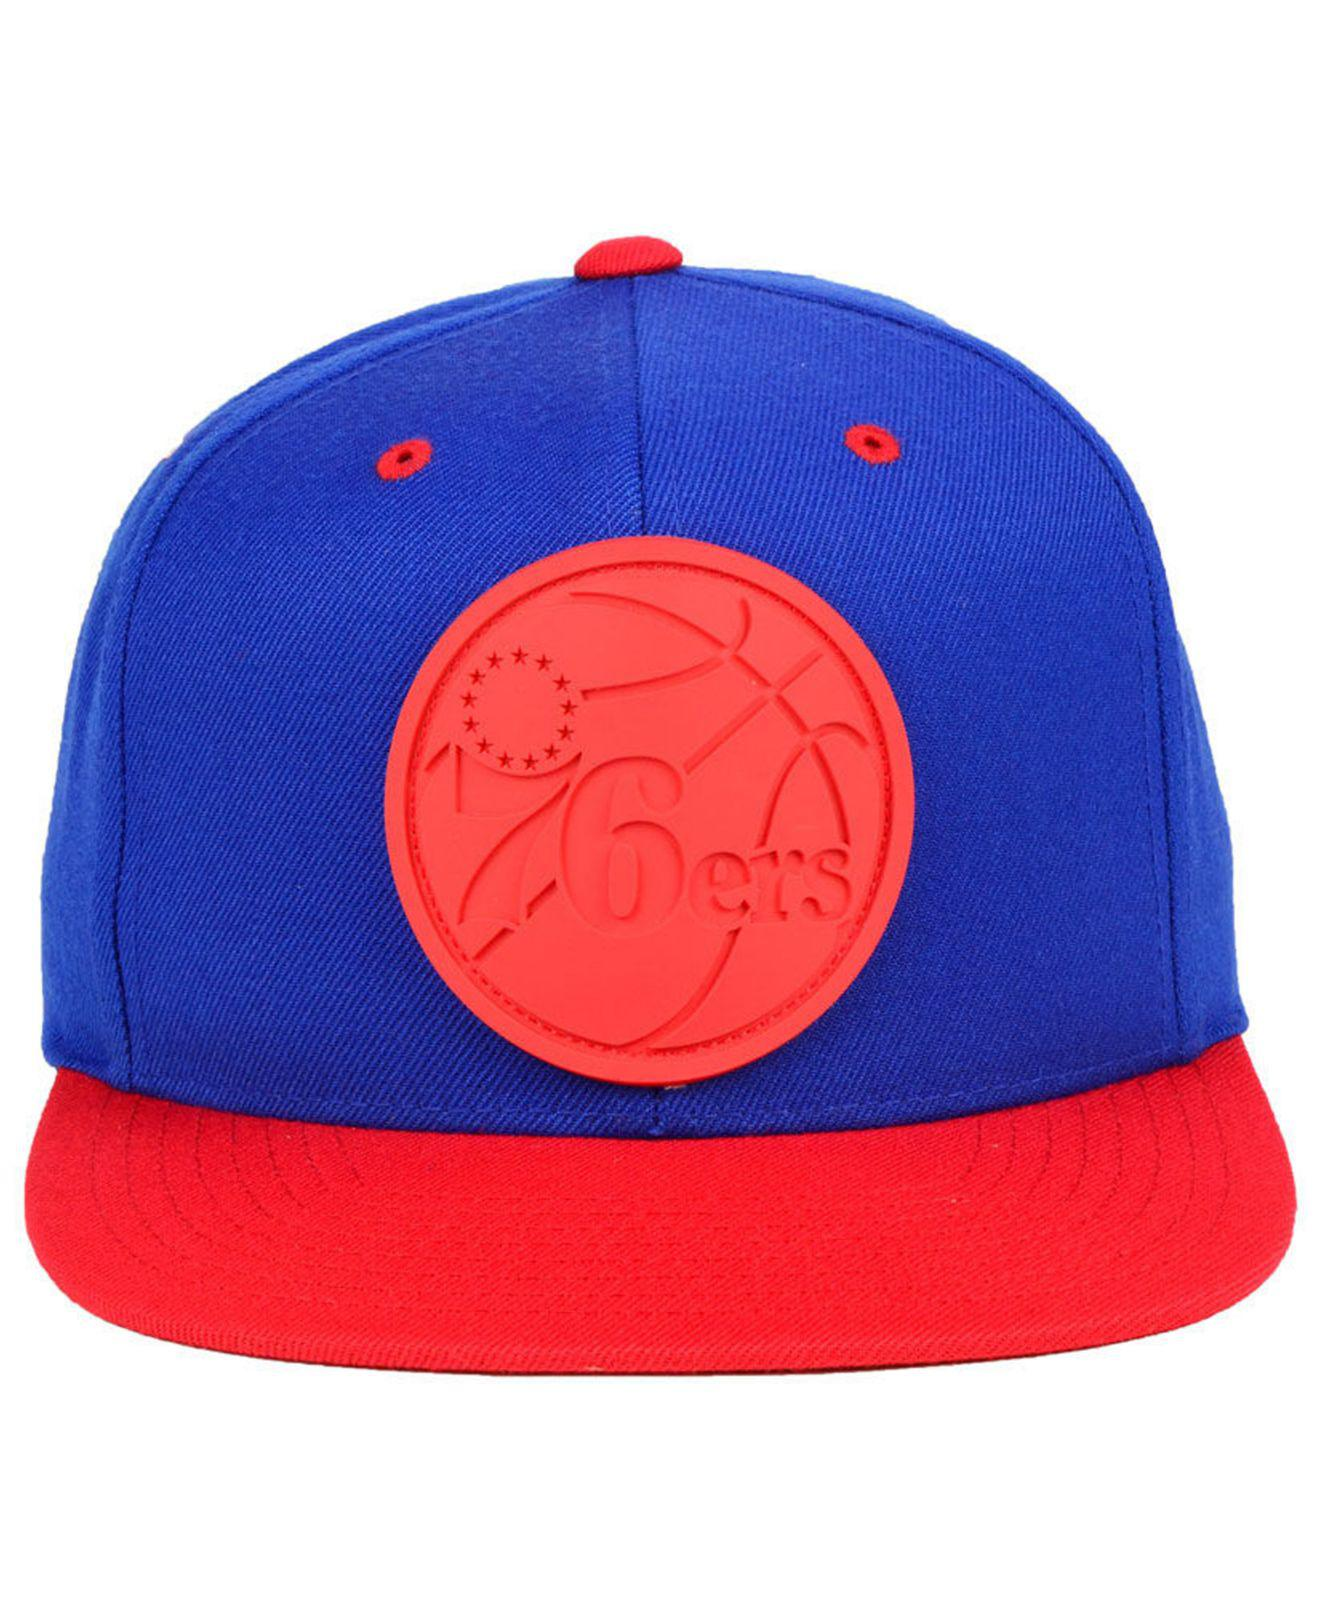 huge discount afd8e 42106 ... closeout lyst mitchell ness philadelphia 76ers rubber weld snapback cap  in blue for men 43803 e9333